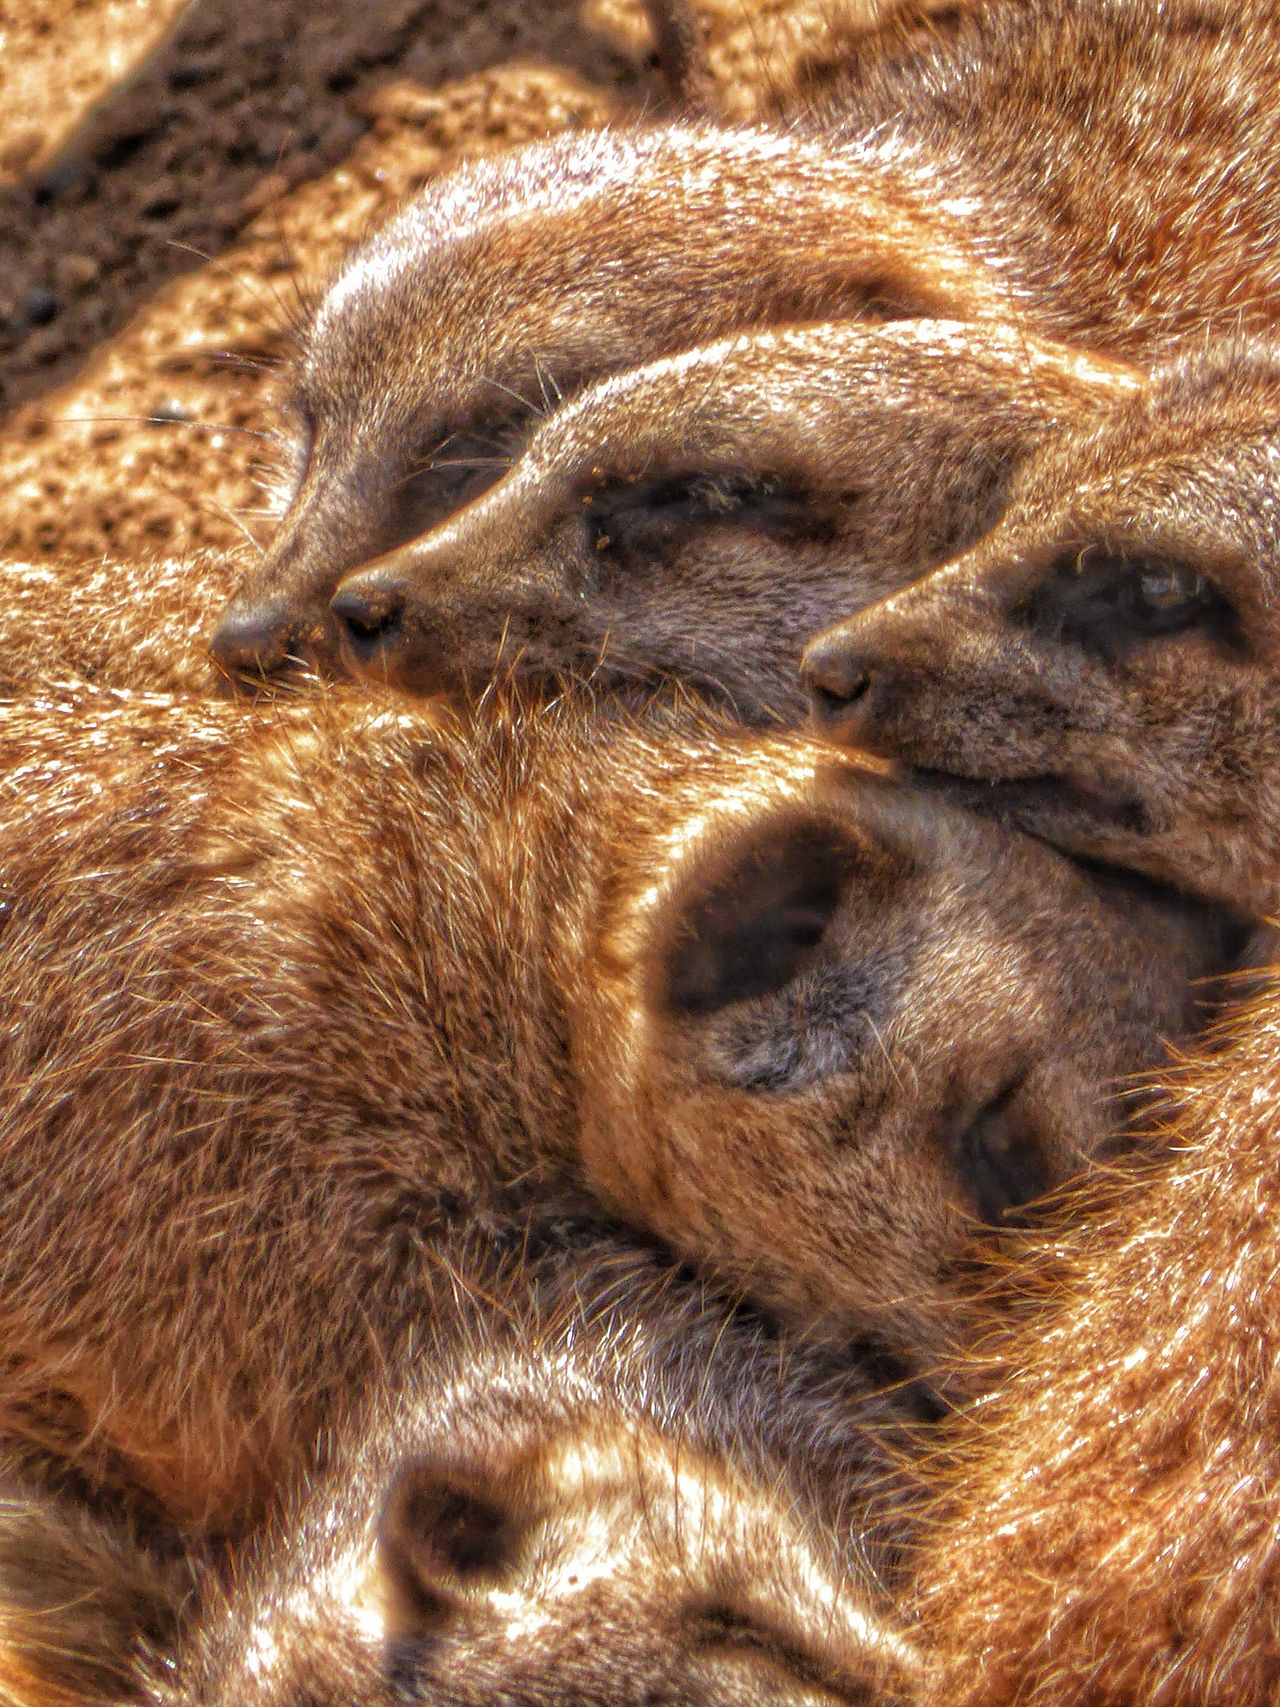 Taking Photos EyeEm Nature Lover Chester Zoo Photography Zoo Animals Meerkat Cuddling Keeping Warm Sleeping